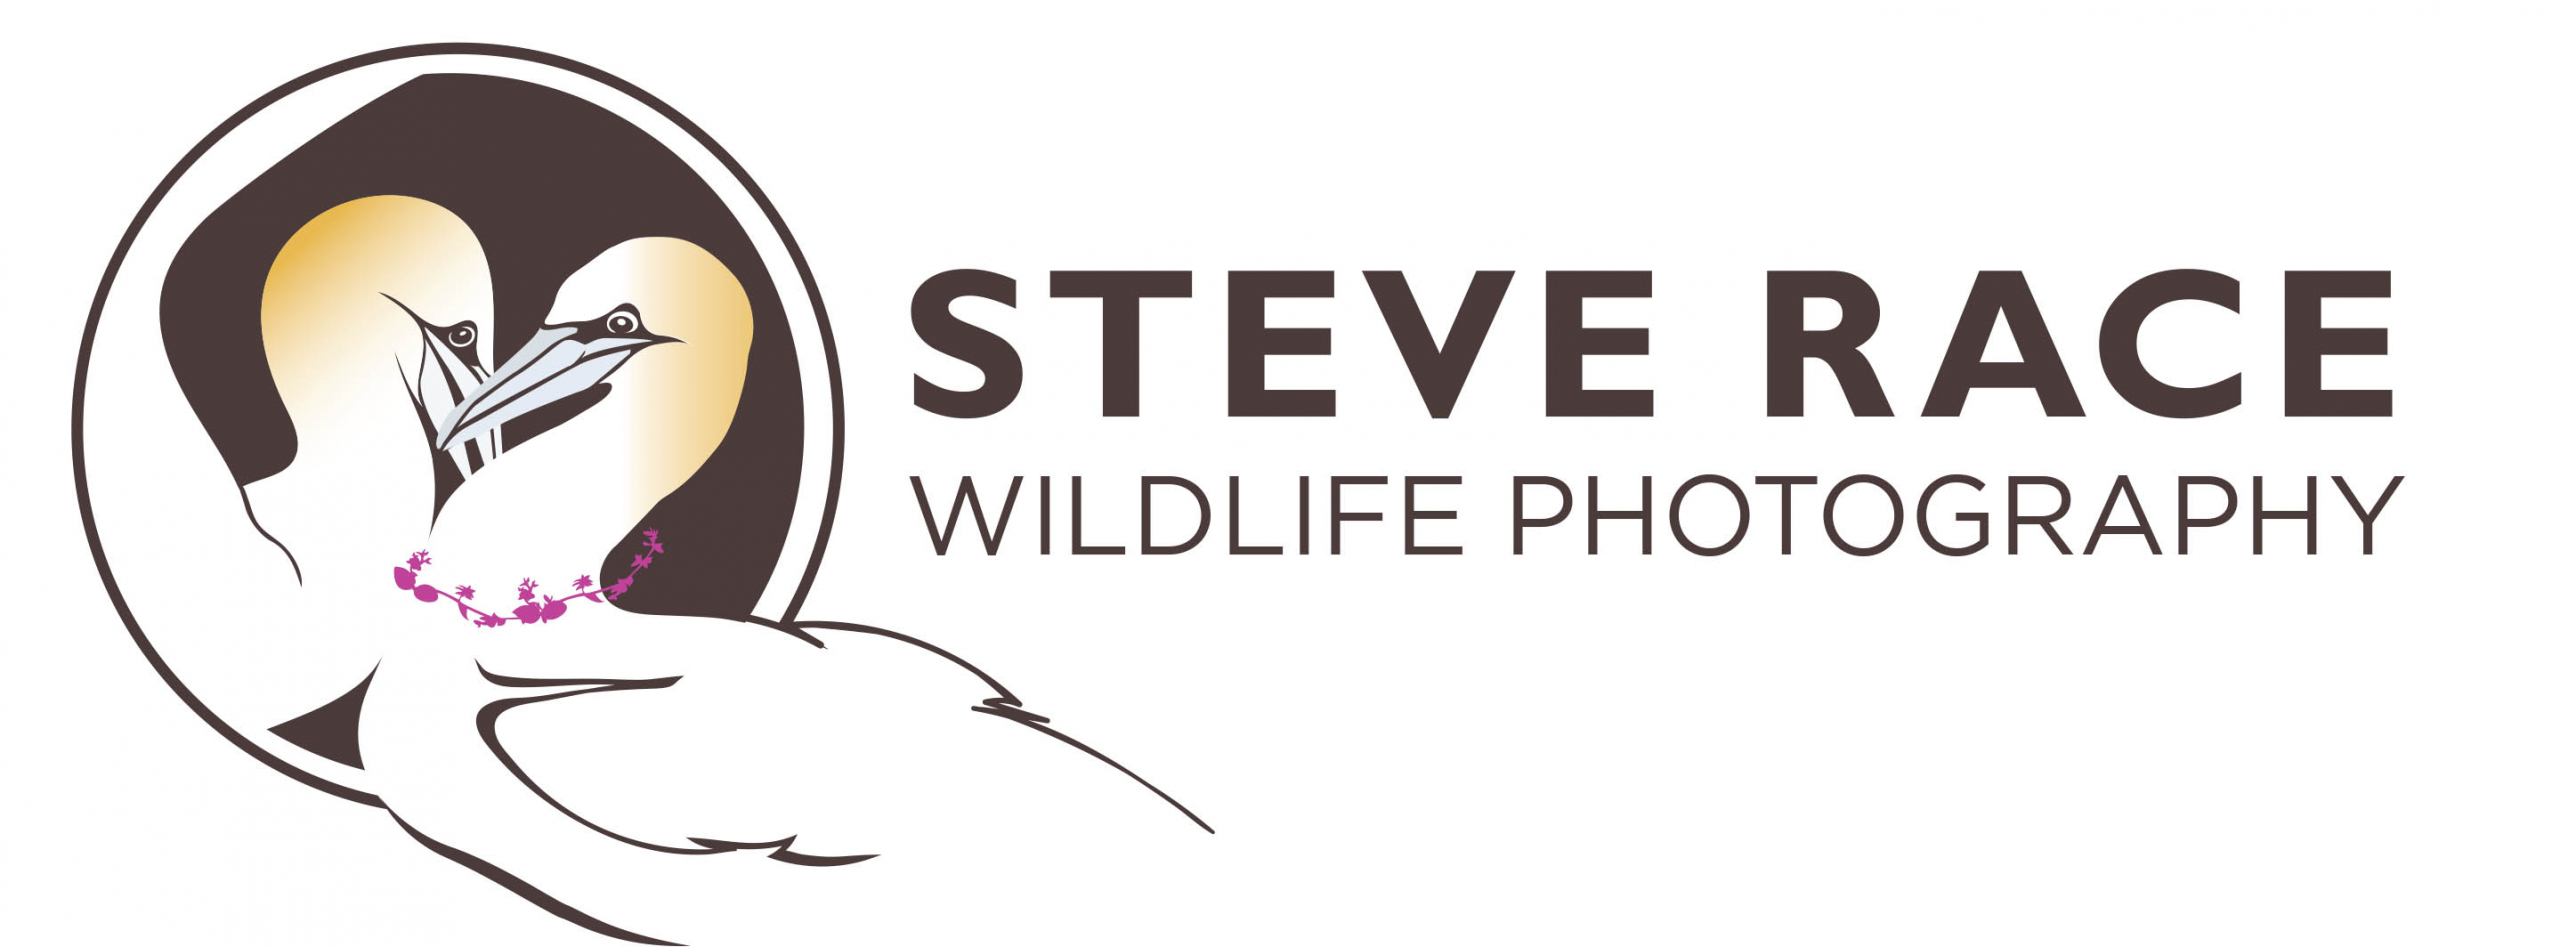 Steve Race Wildlife phototpgraphy FINAL logo 1